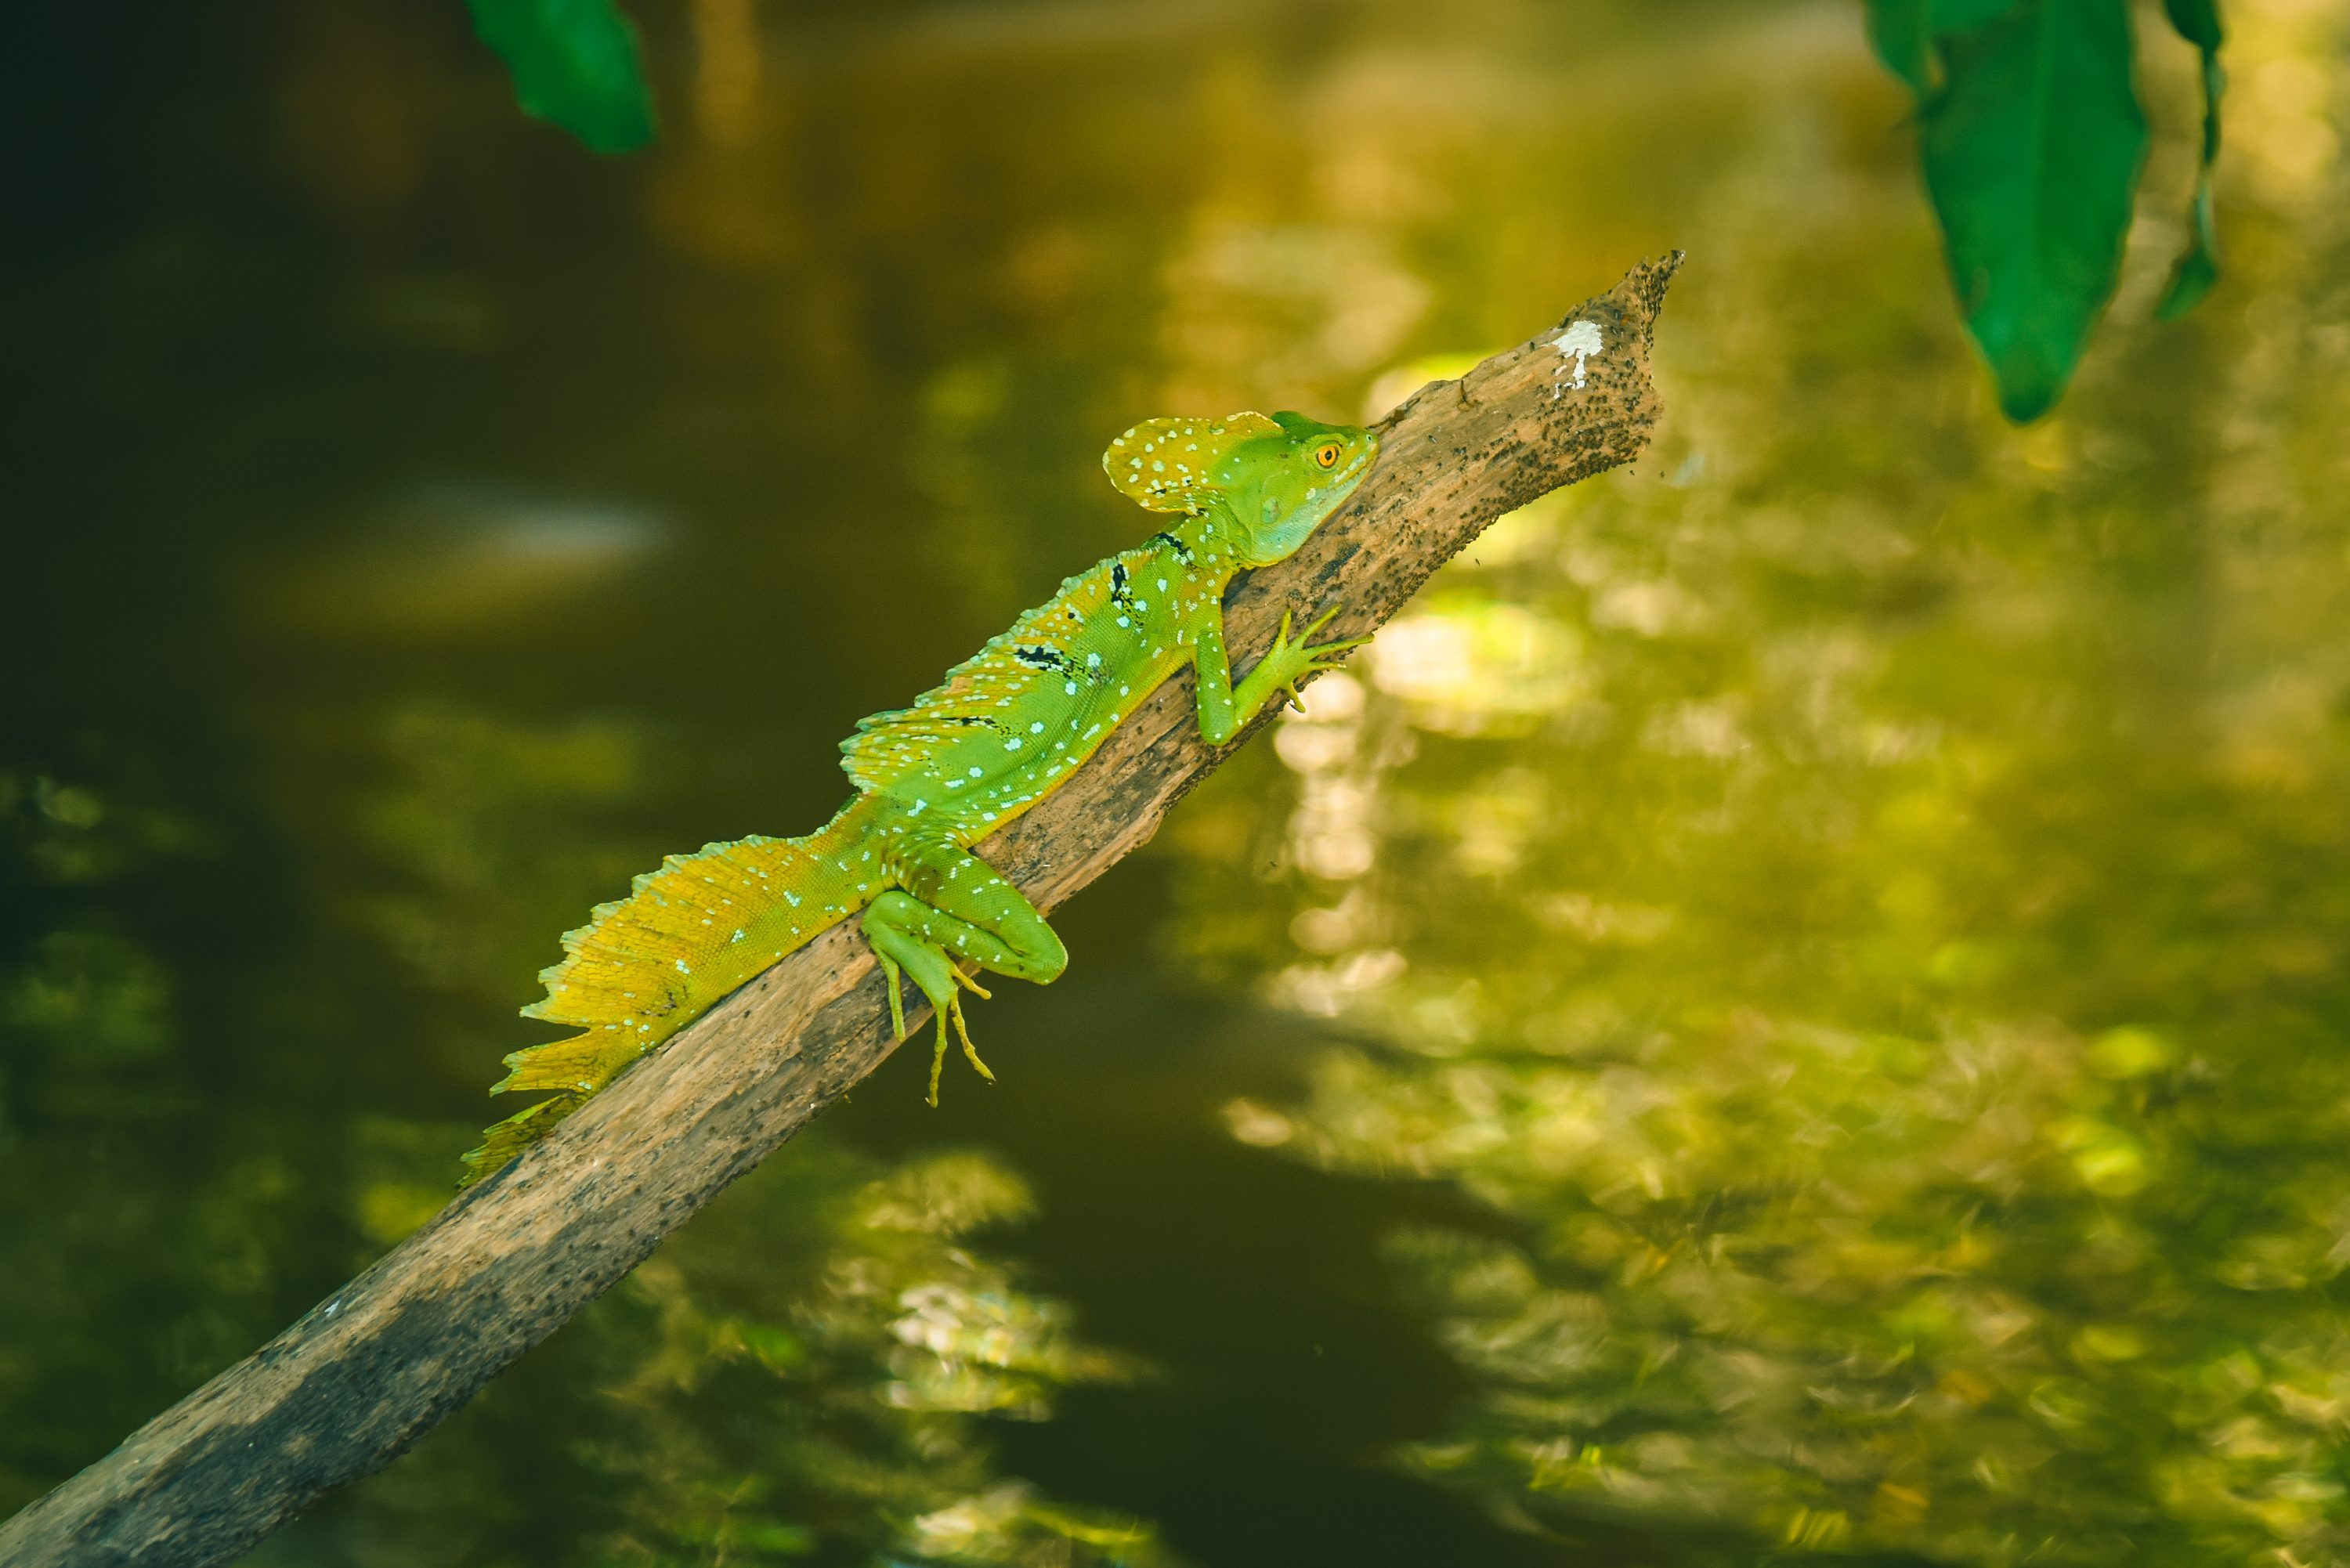 Perfect Jesus Christ Lizard, this extraordinary reptile may run on water when threatened!